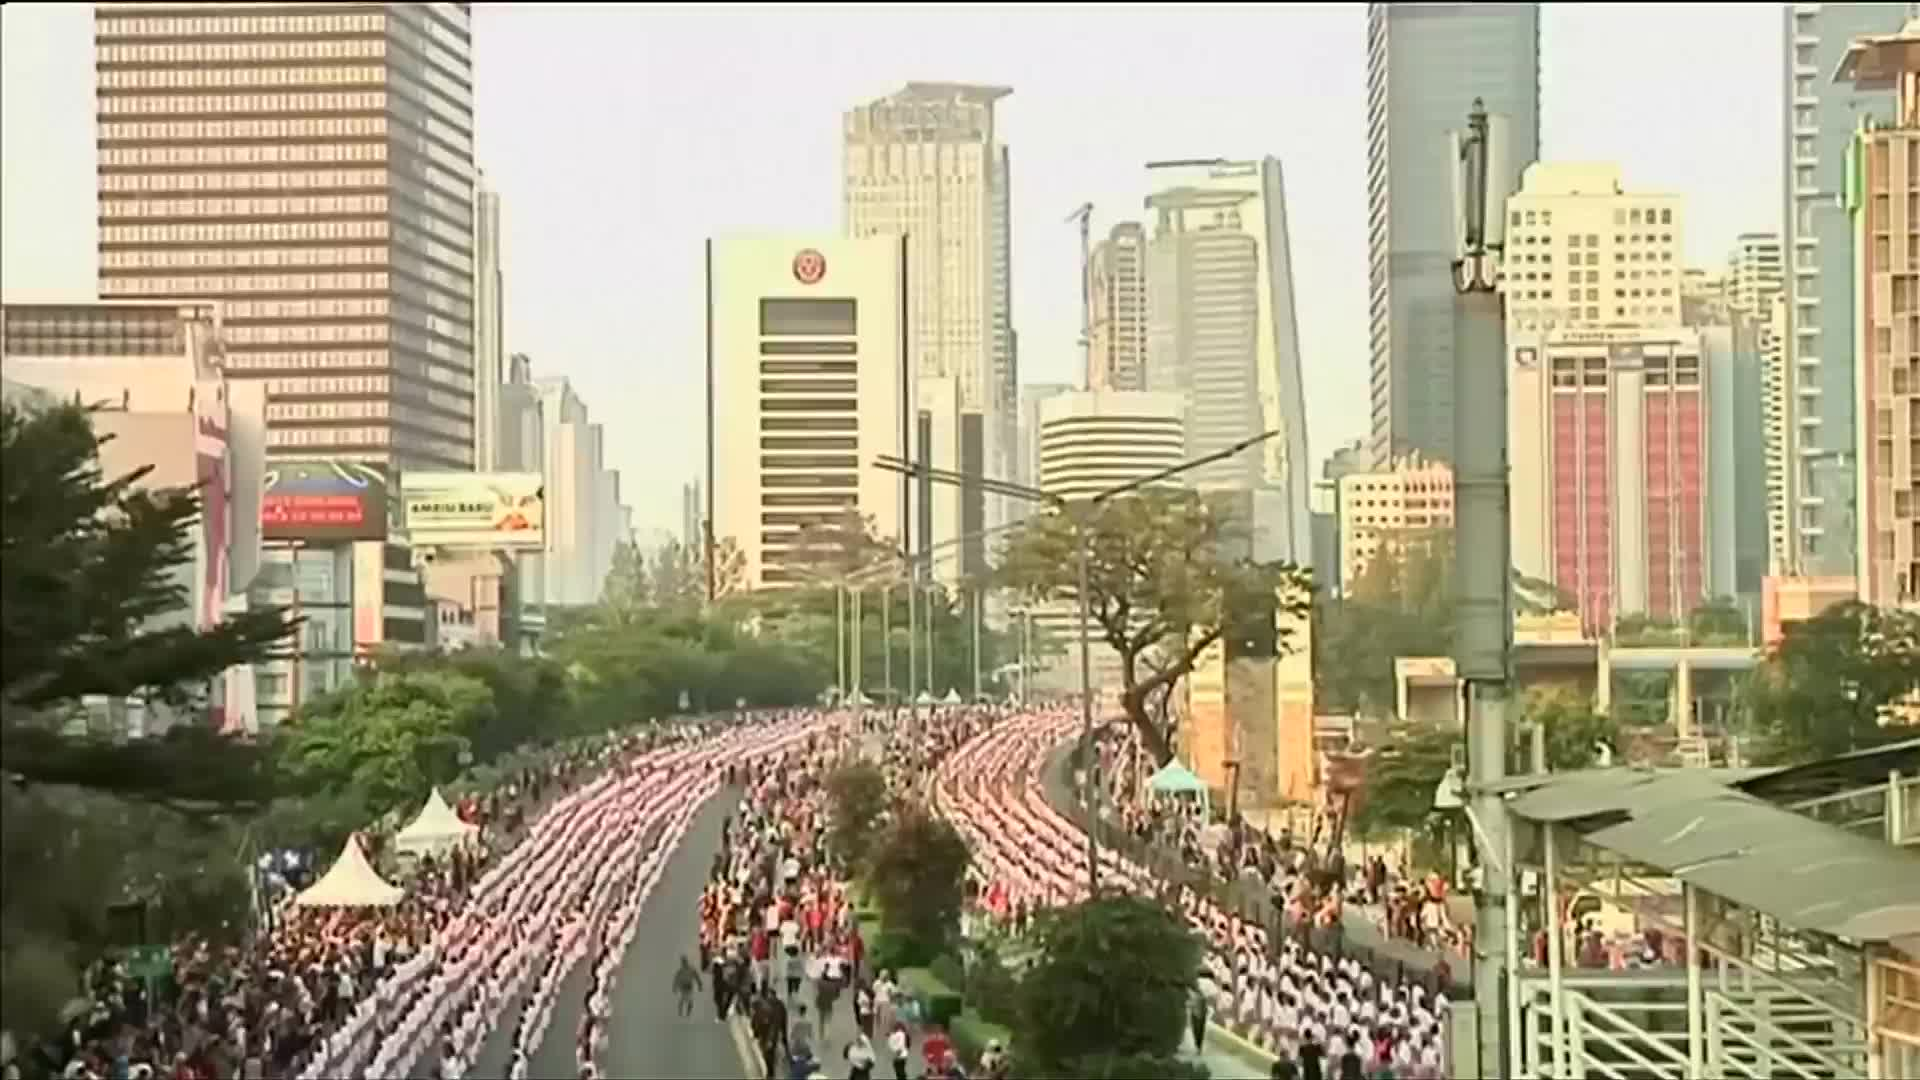 Over 65,000 revelers danced in a Guinness World Record attempt